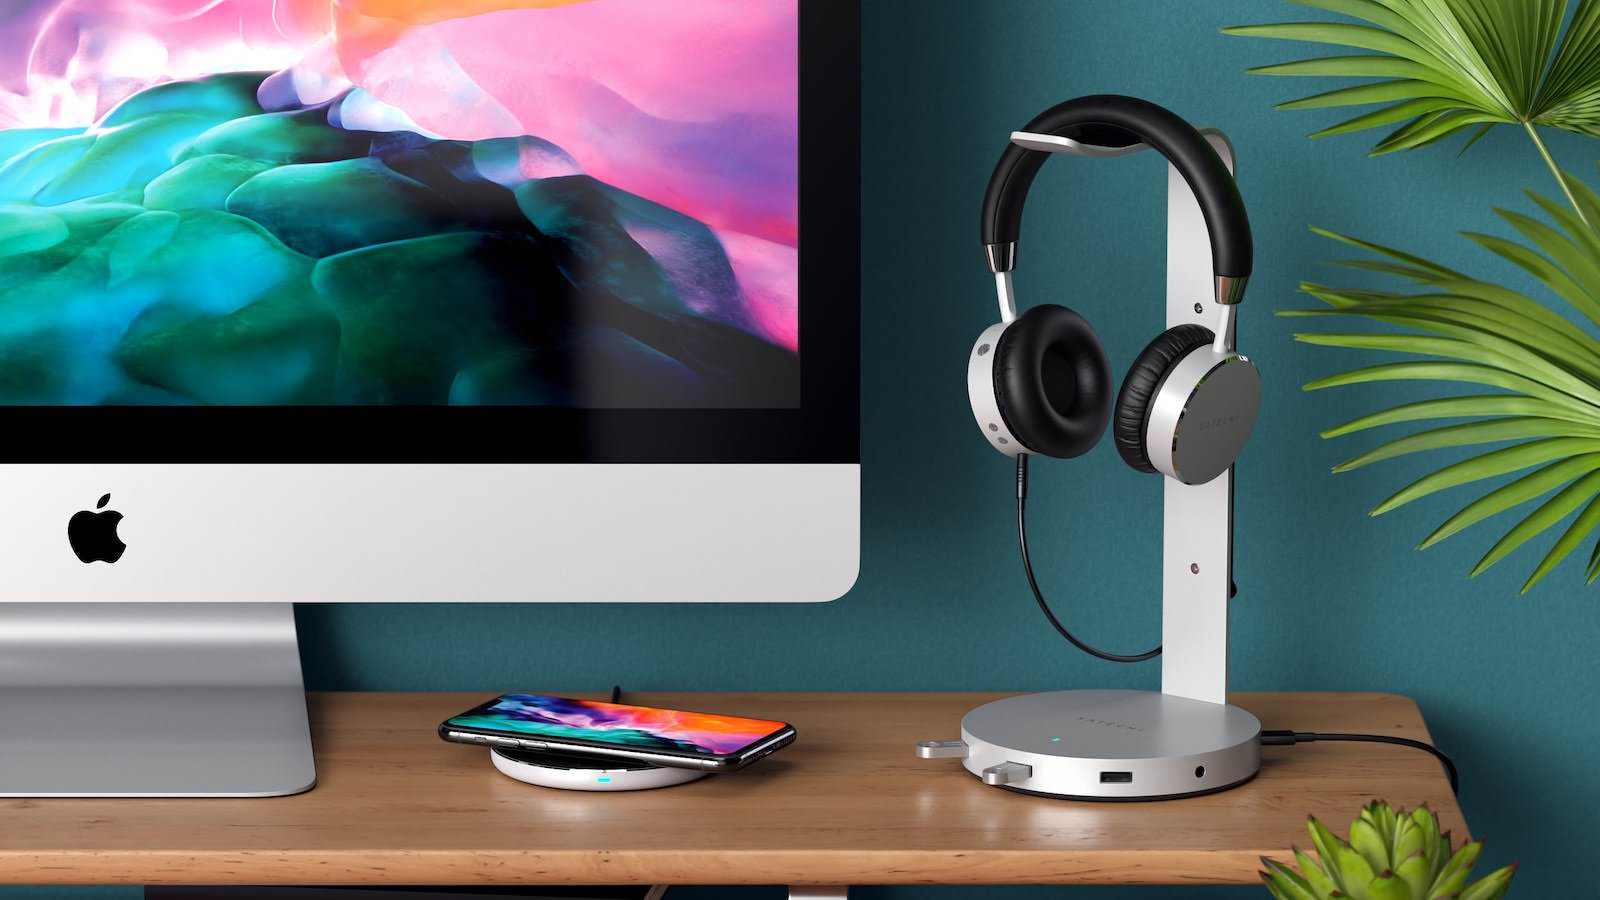 Satechi Headphone Stand with ports